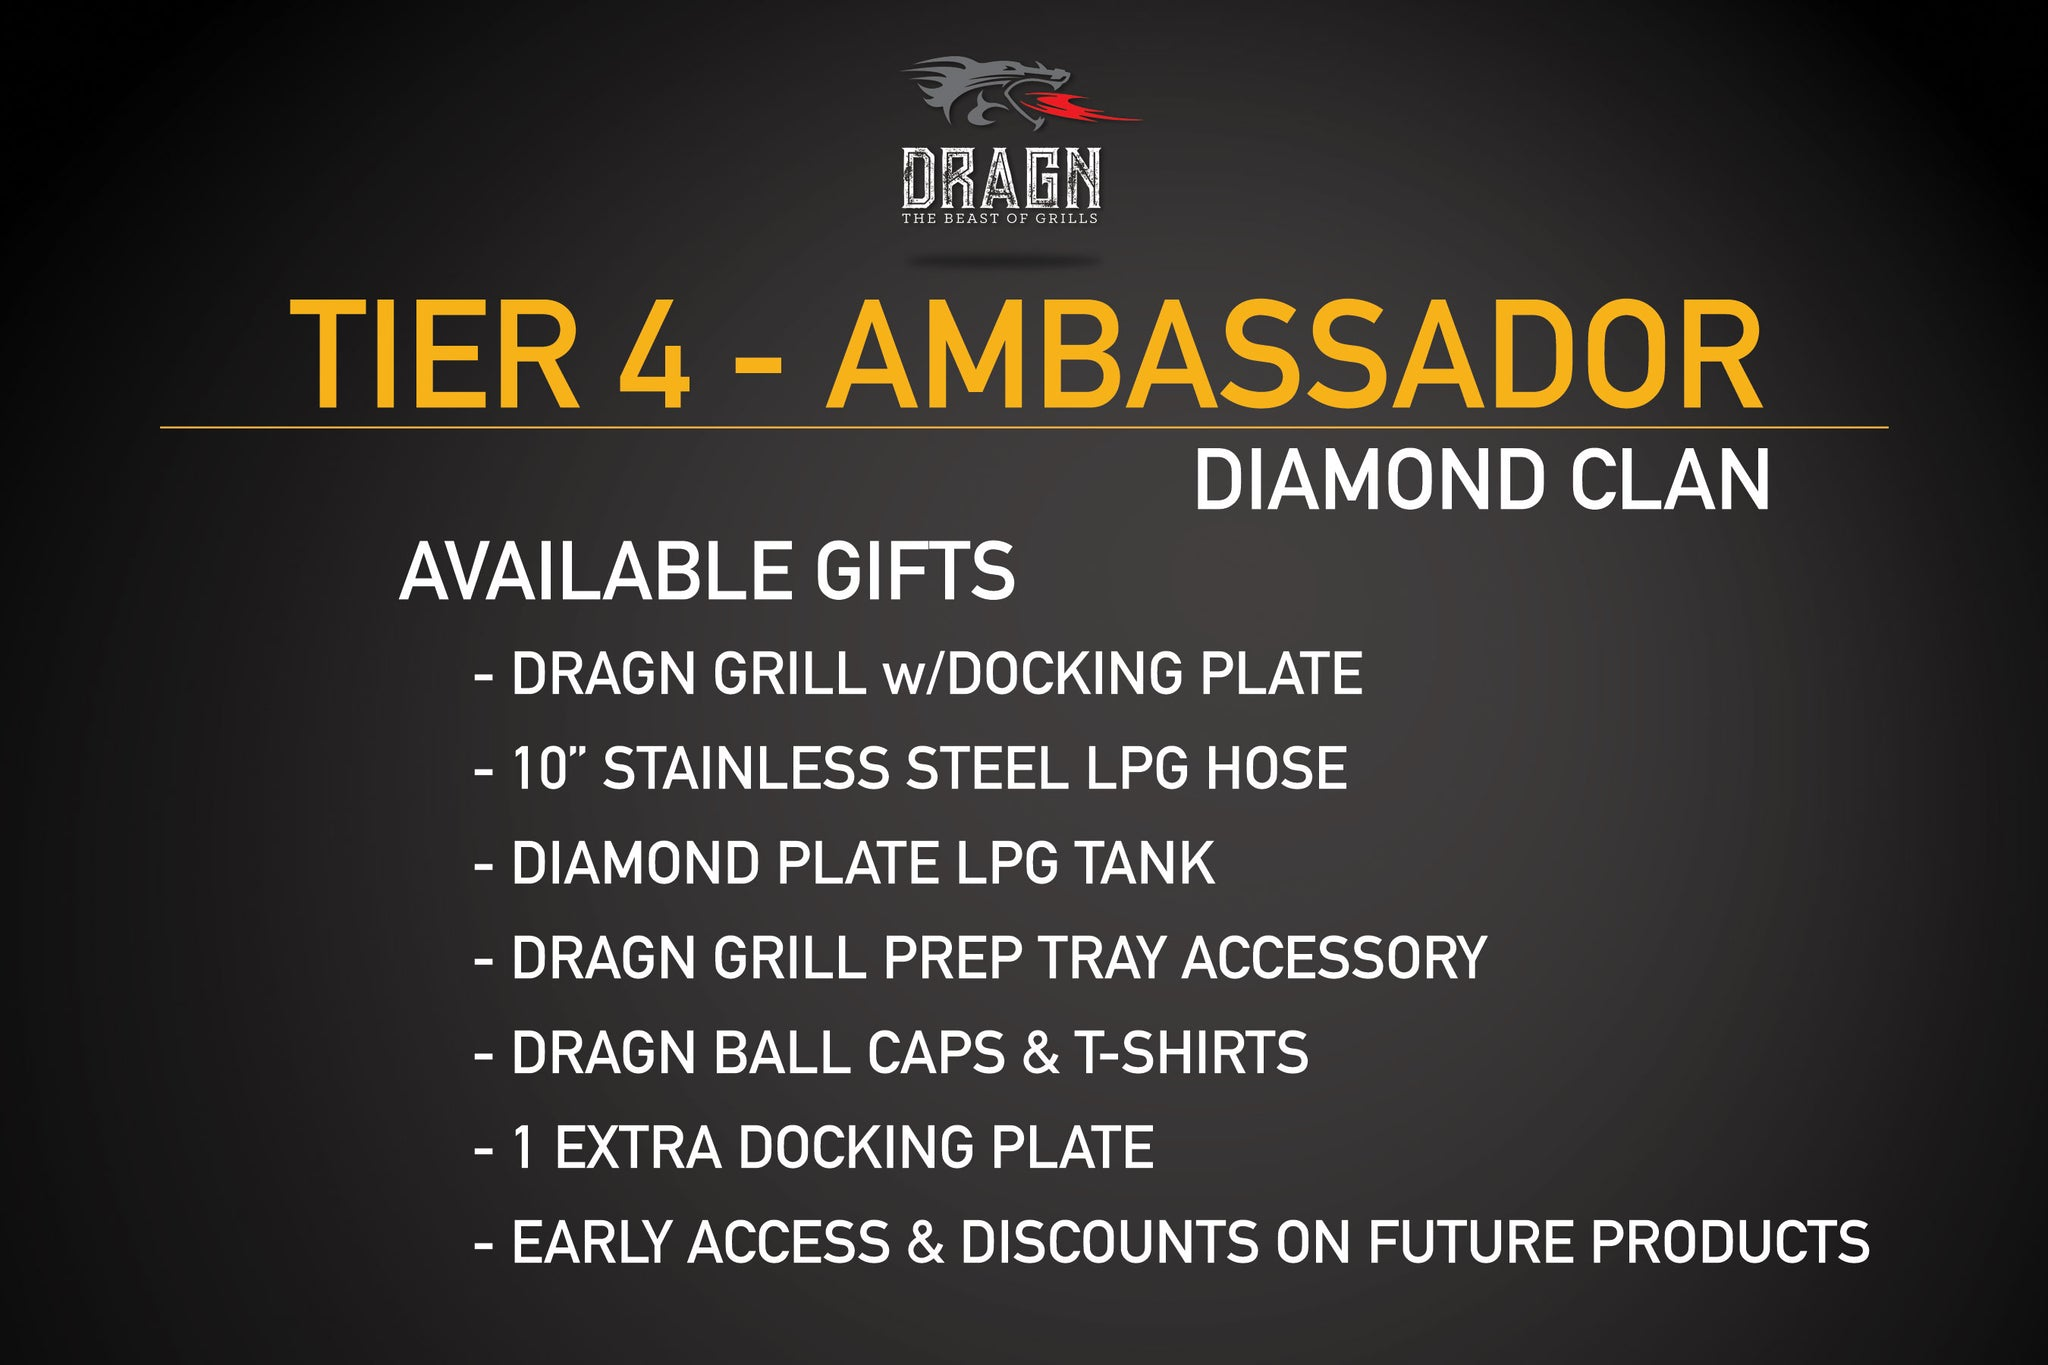 TIER 4: DIAMOND CLAN AMBASSADOR (LIMITED 100)